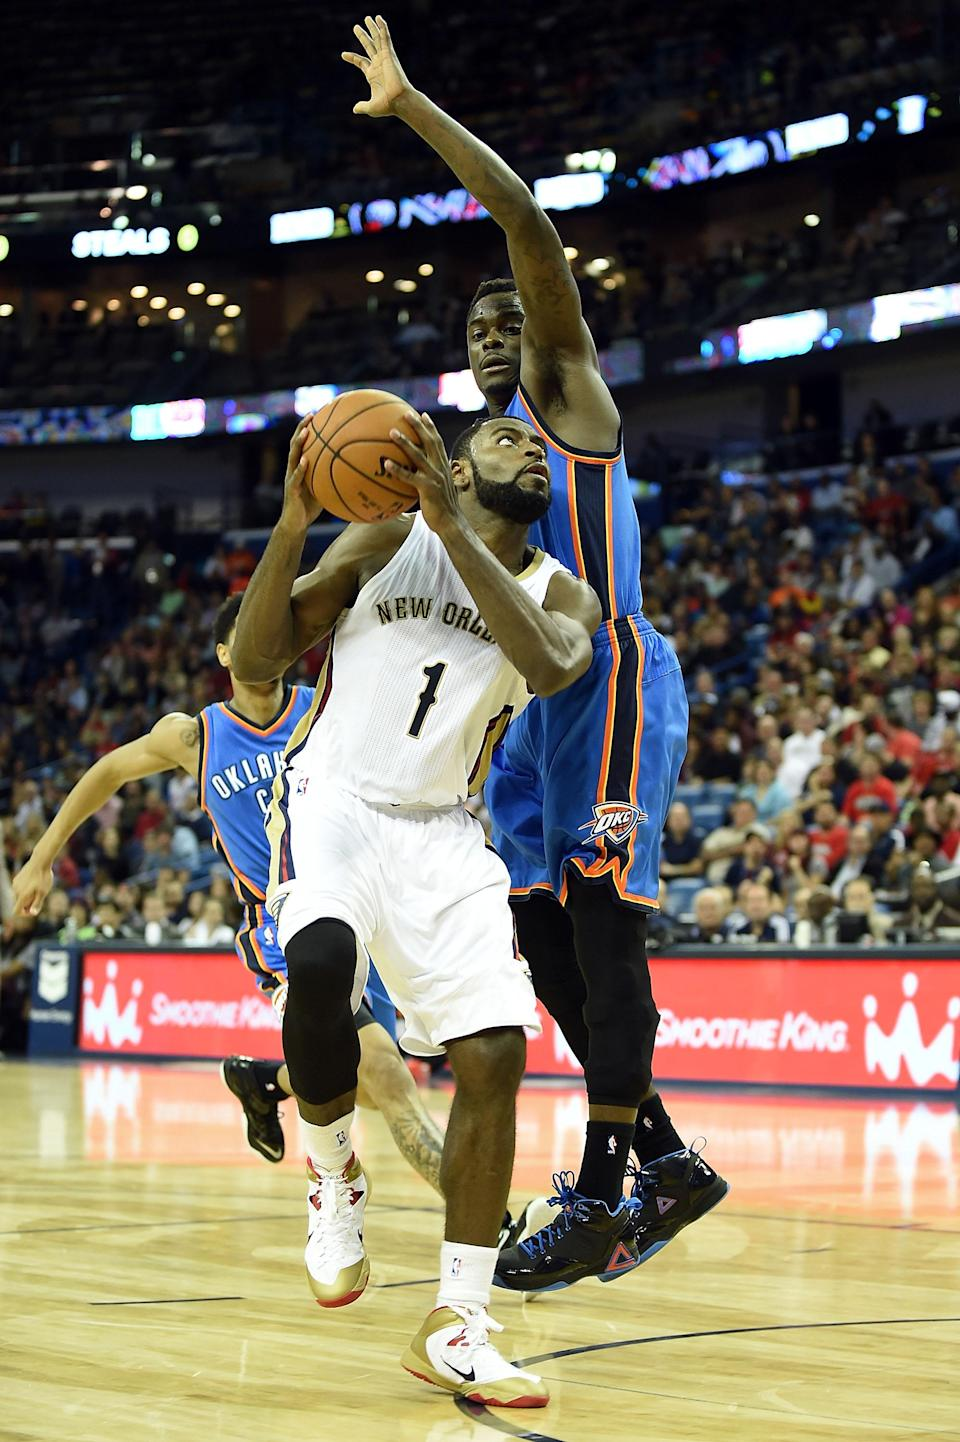 Tyreke Evans of the New Orleans Pelicans goes for a shot against the Oklahoma City Thunder, during the fourth quarter of their game at the Smoothie King Center in New Orleans, Louisiana, on December 2, 2014 (AFP Photo/Stacy Revere)